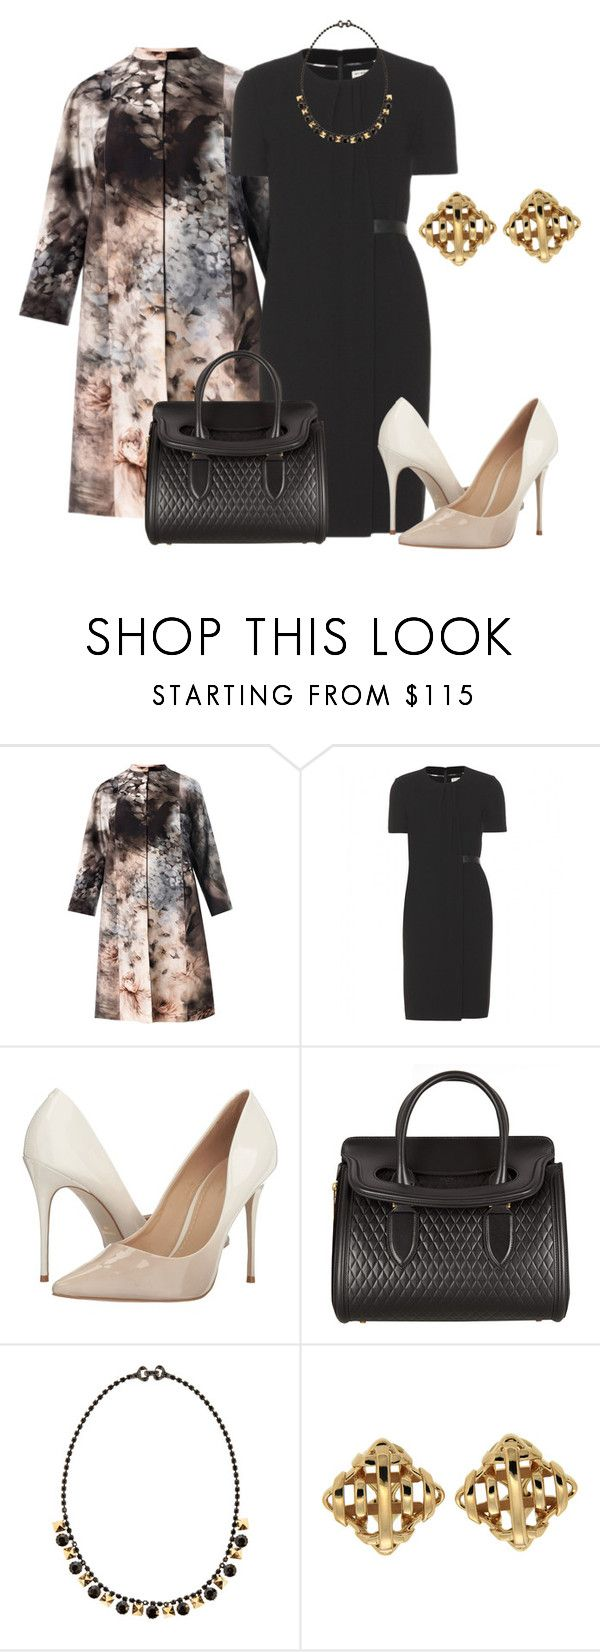 """Dreams that you could feel, becoming real"" by nikita-rae ❤ liked on Polyvore featuring Valentino, Burberry, Massimo Matteo, Alexander McQueen, Tom Binns and Valentin Magro"